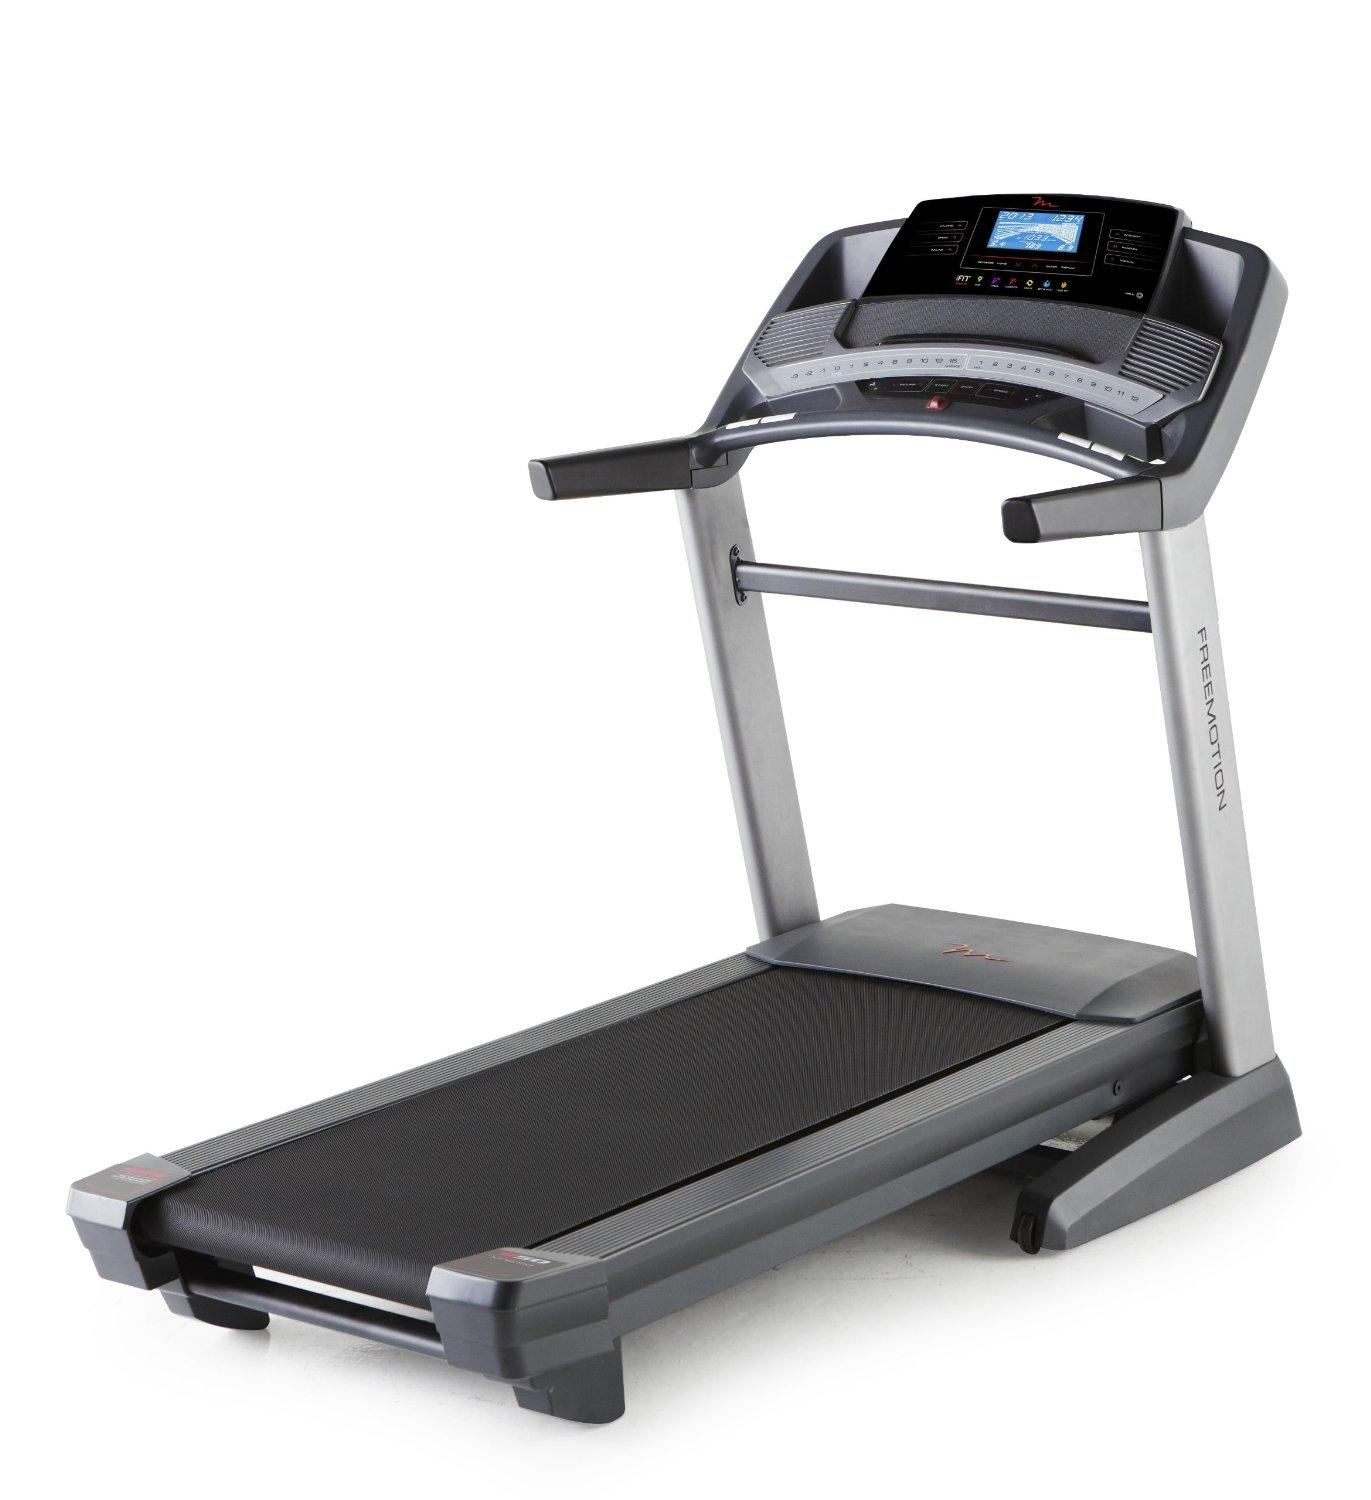 Life Fitness Treadmill Comparison: FreeMotion 850 Review 2018